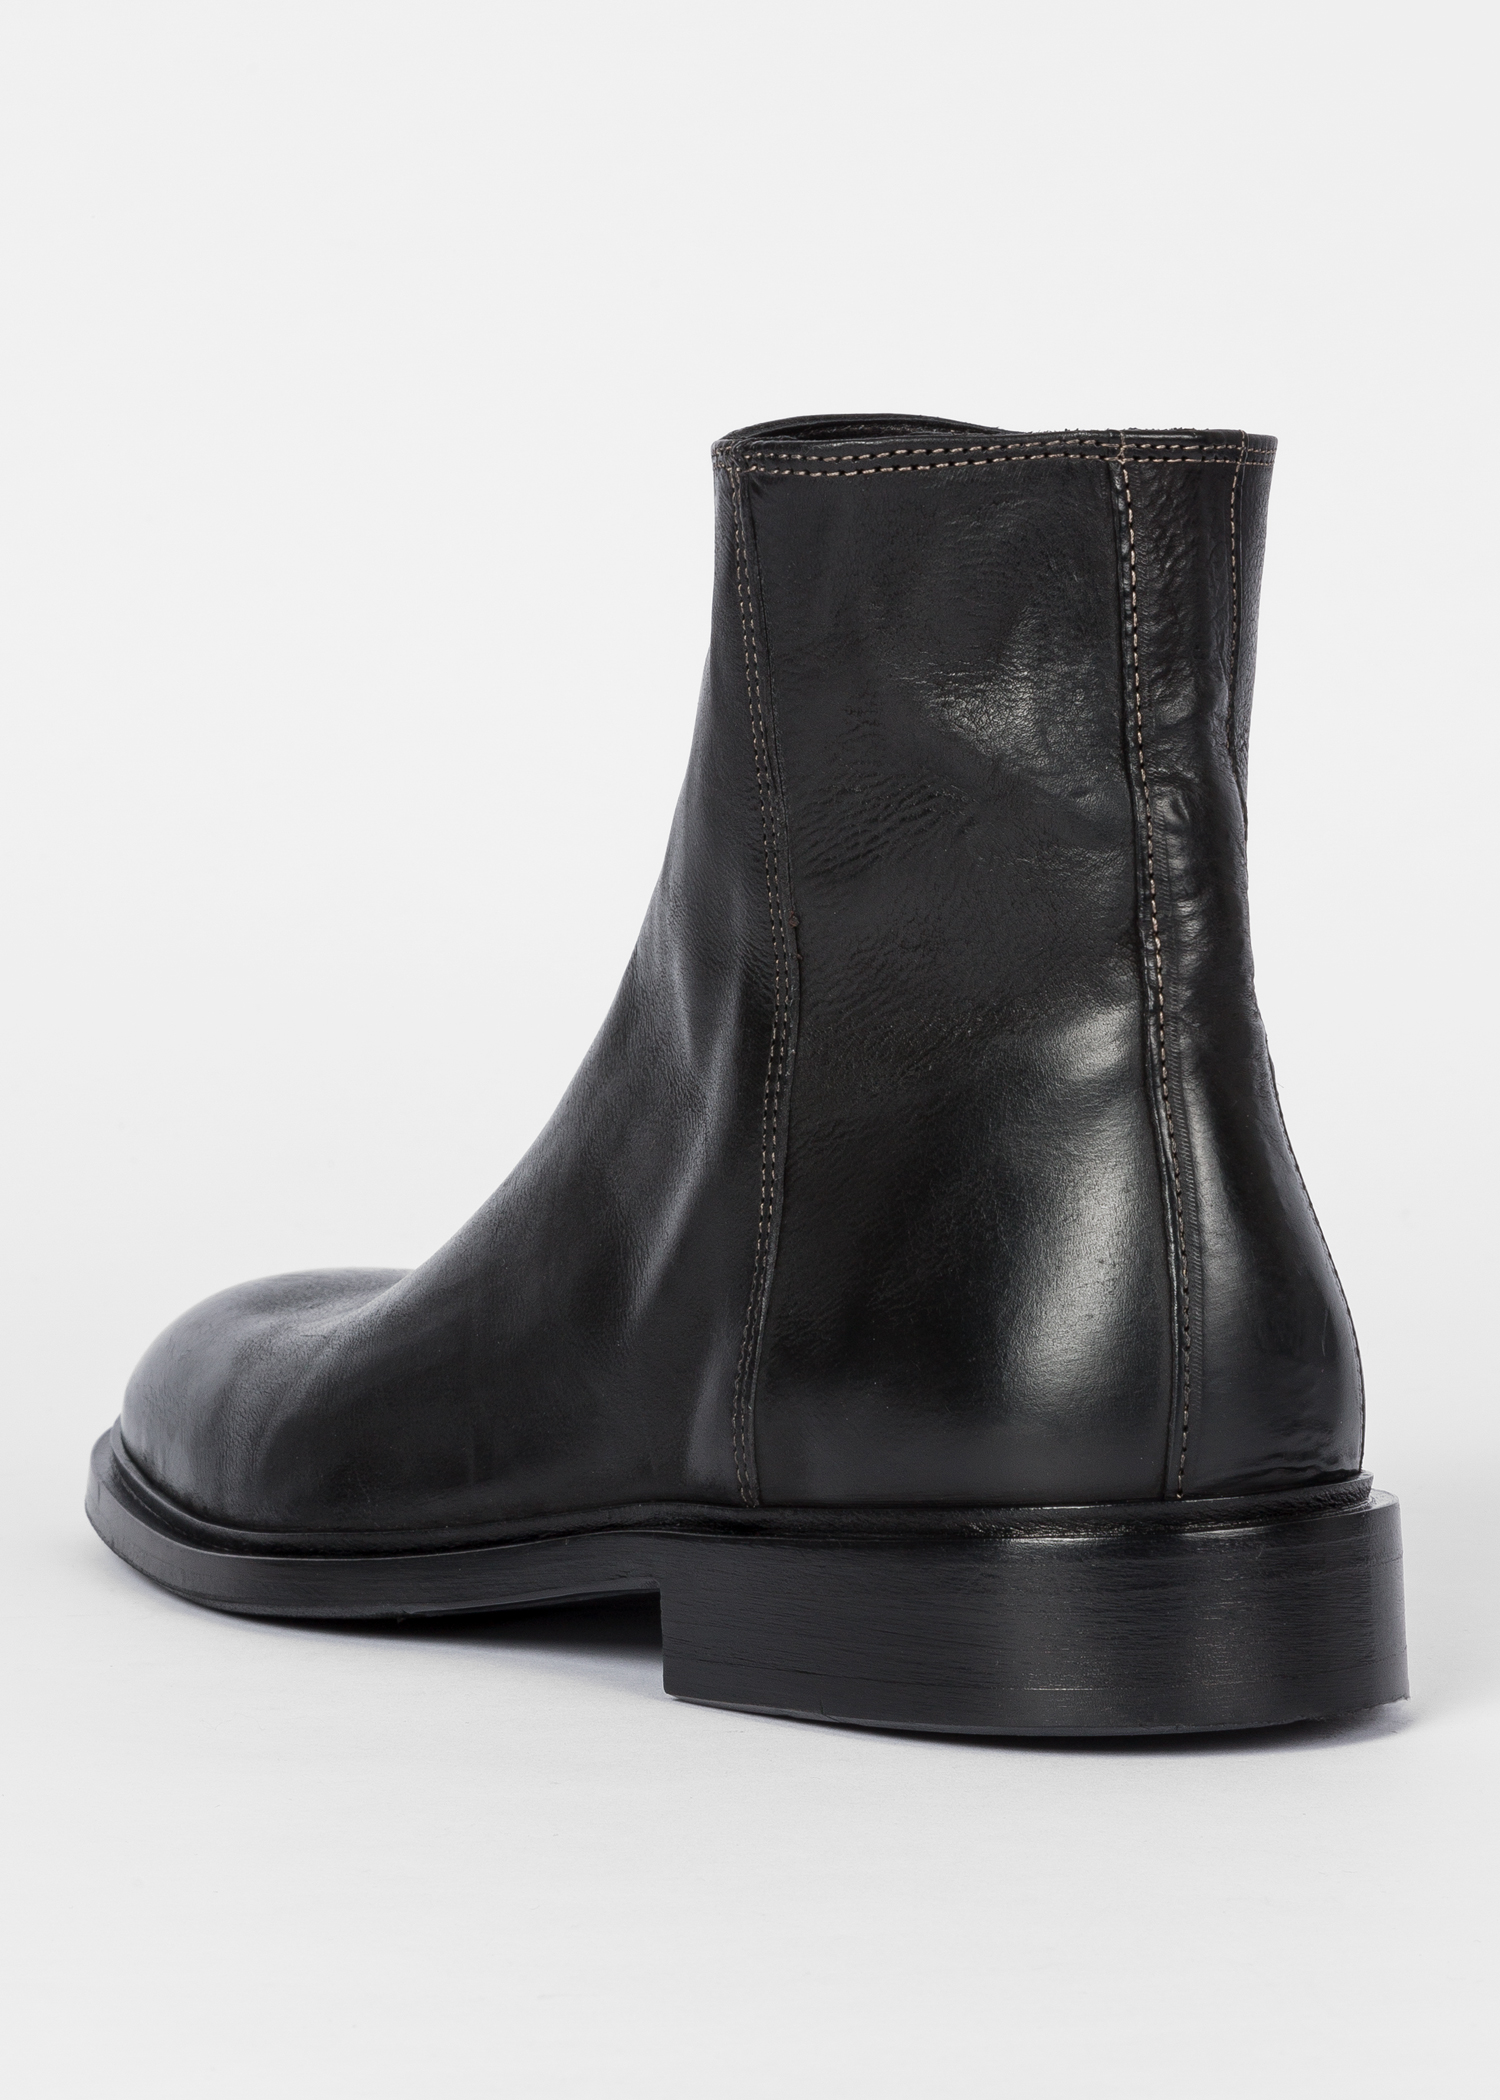 42839335e3bf Back View - Men s Black Leather  Billy  Zip Boots Paul Smith